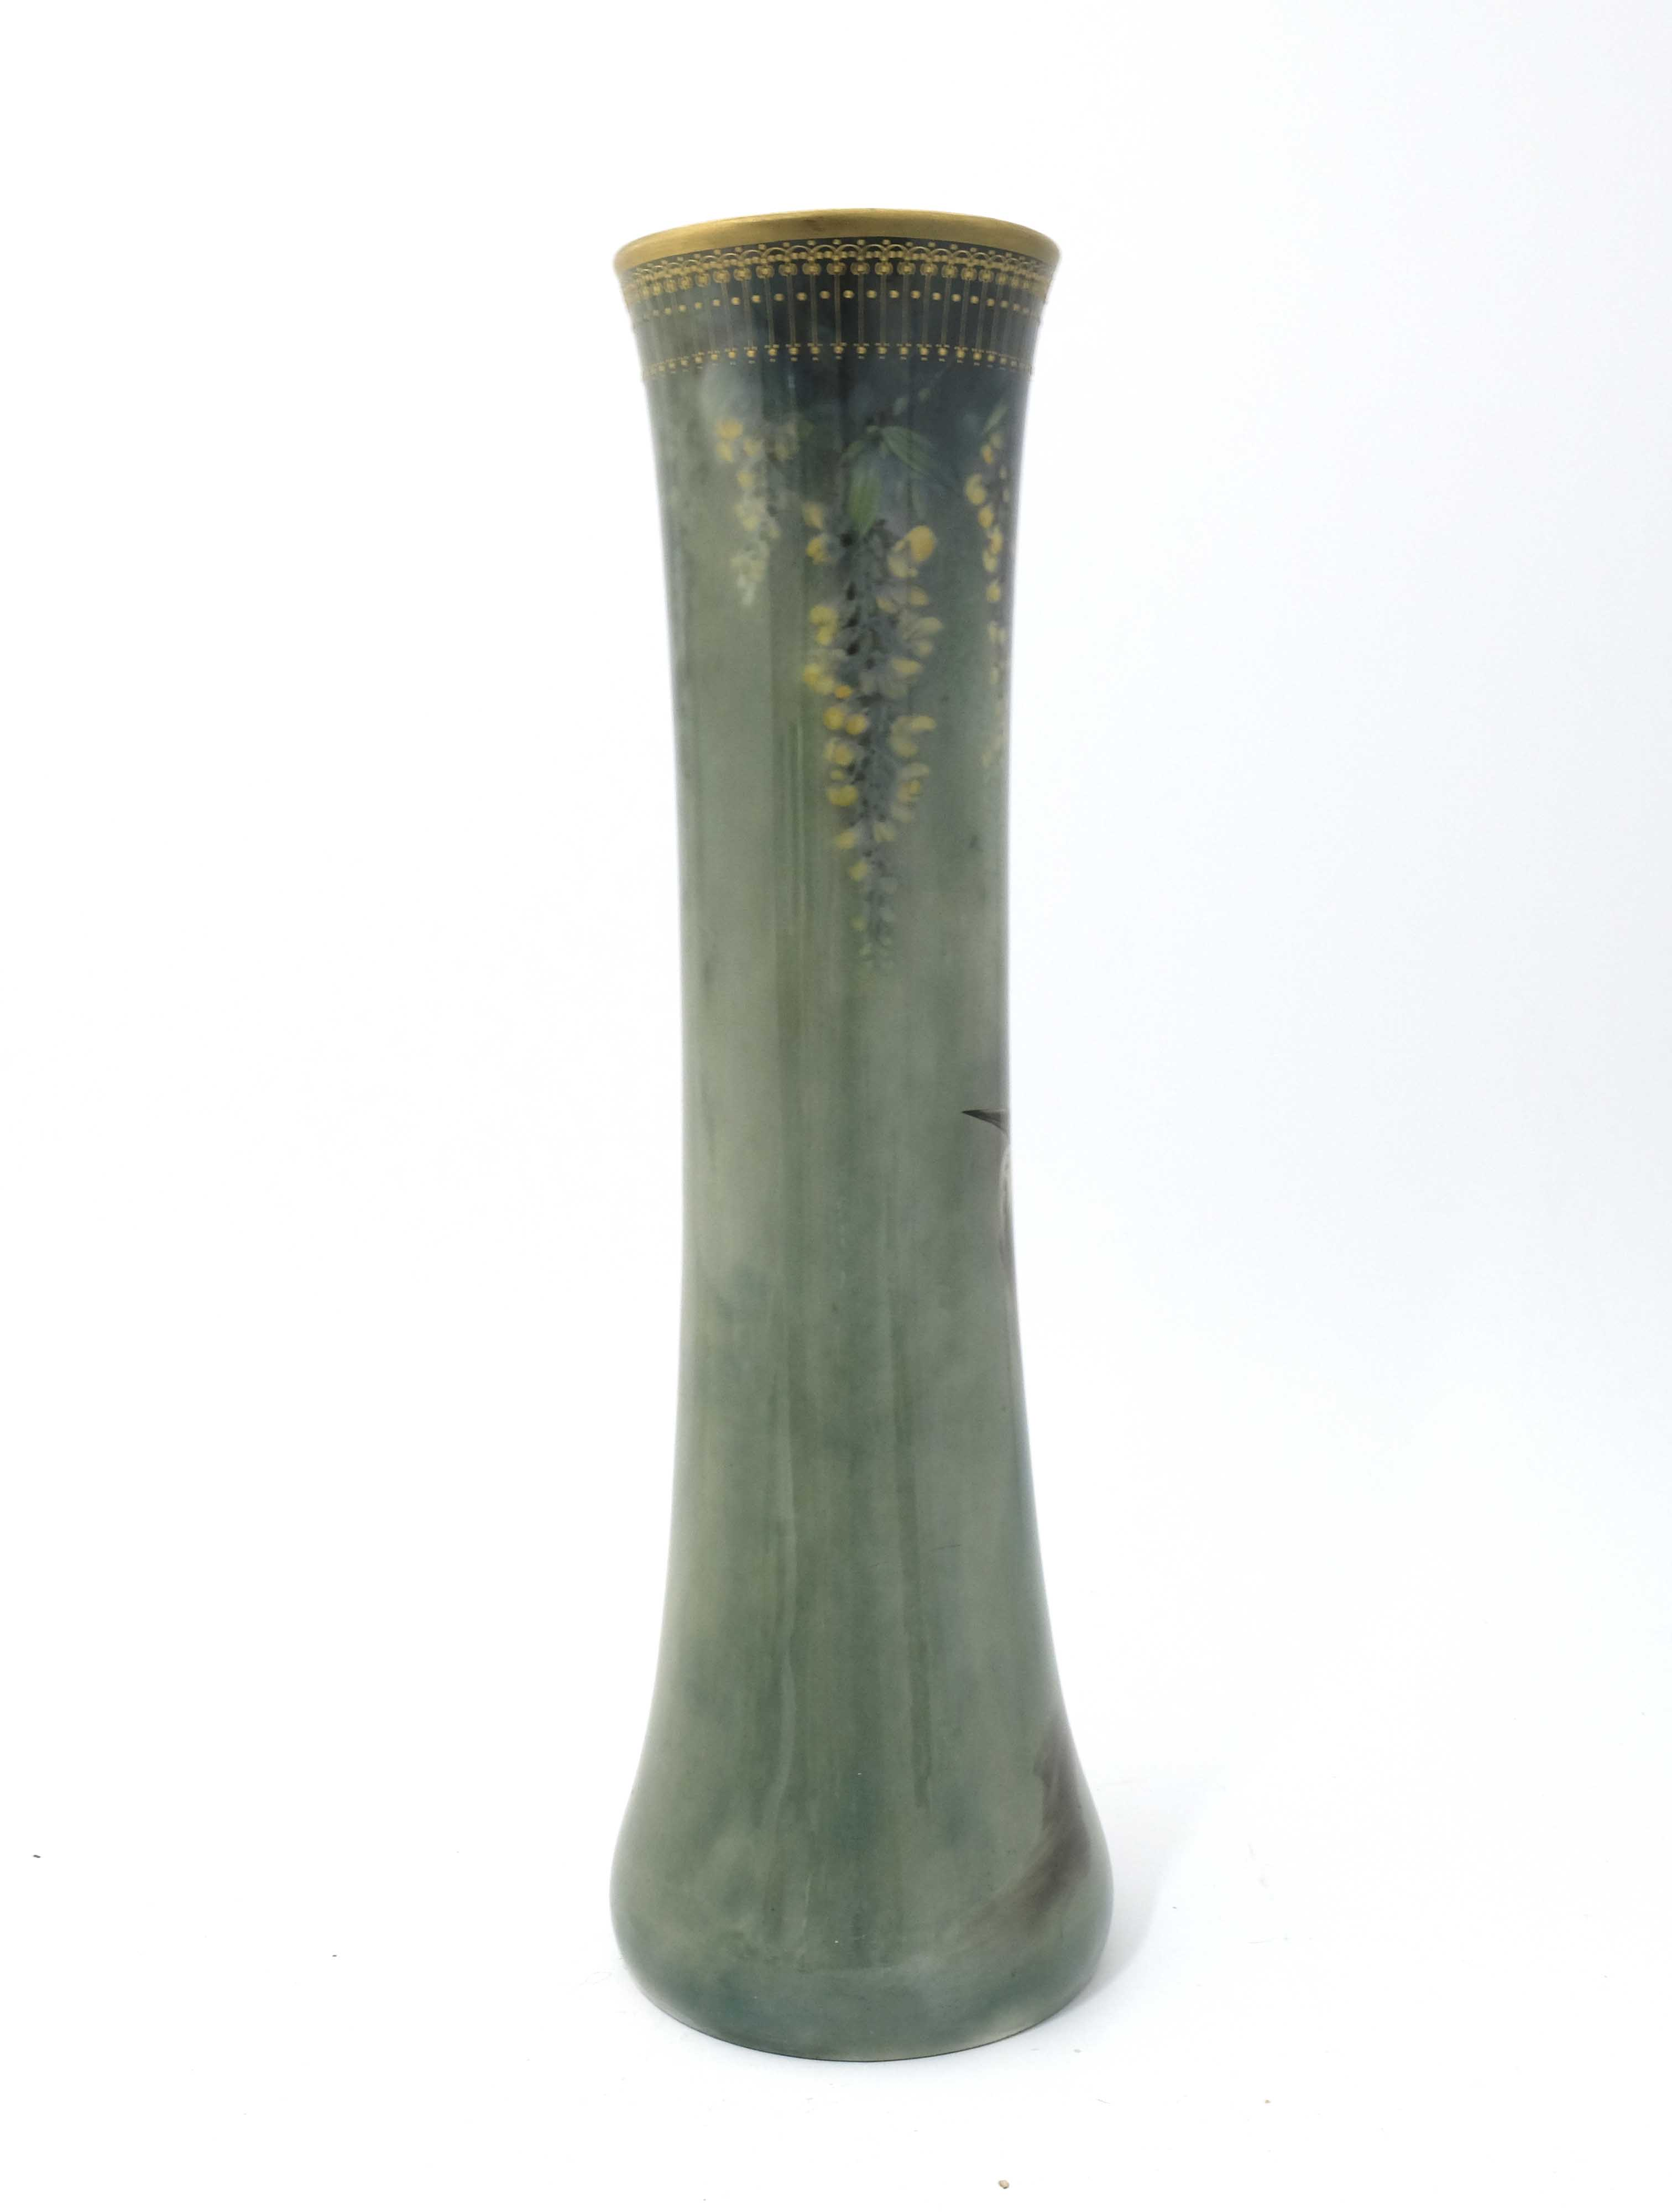 Harry Allen for Royal Doulton, a very large Titani - Image 3 of 5